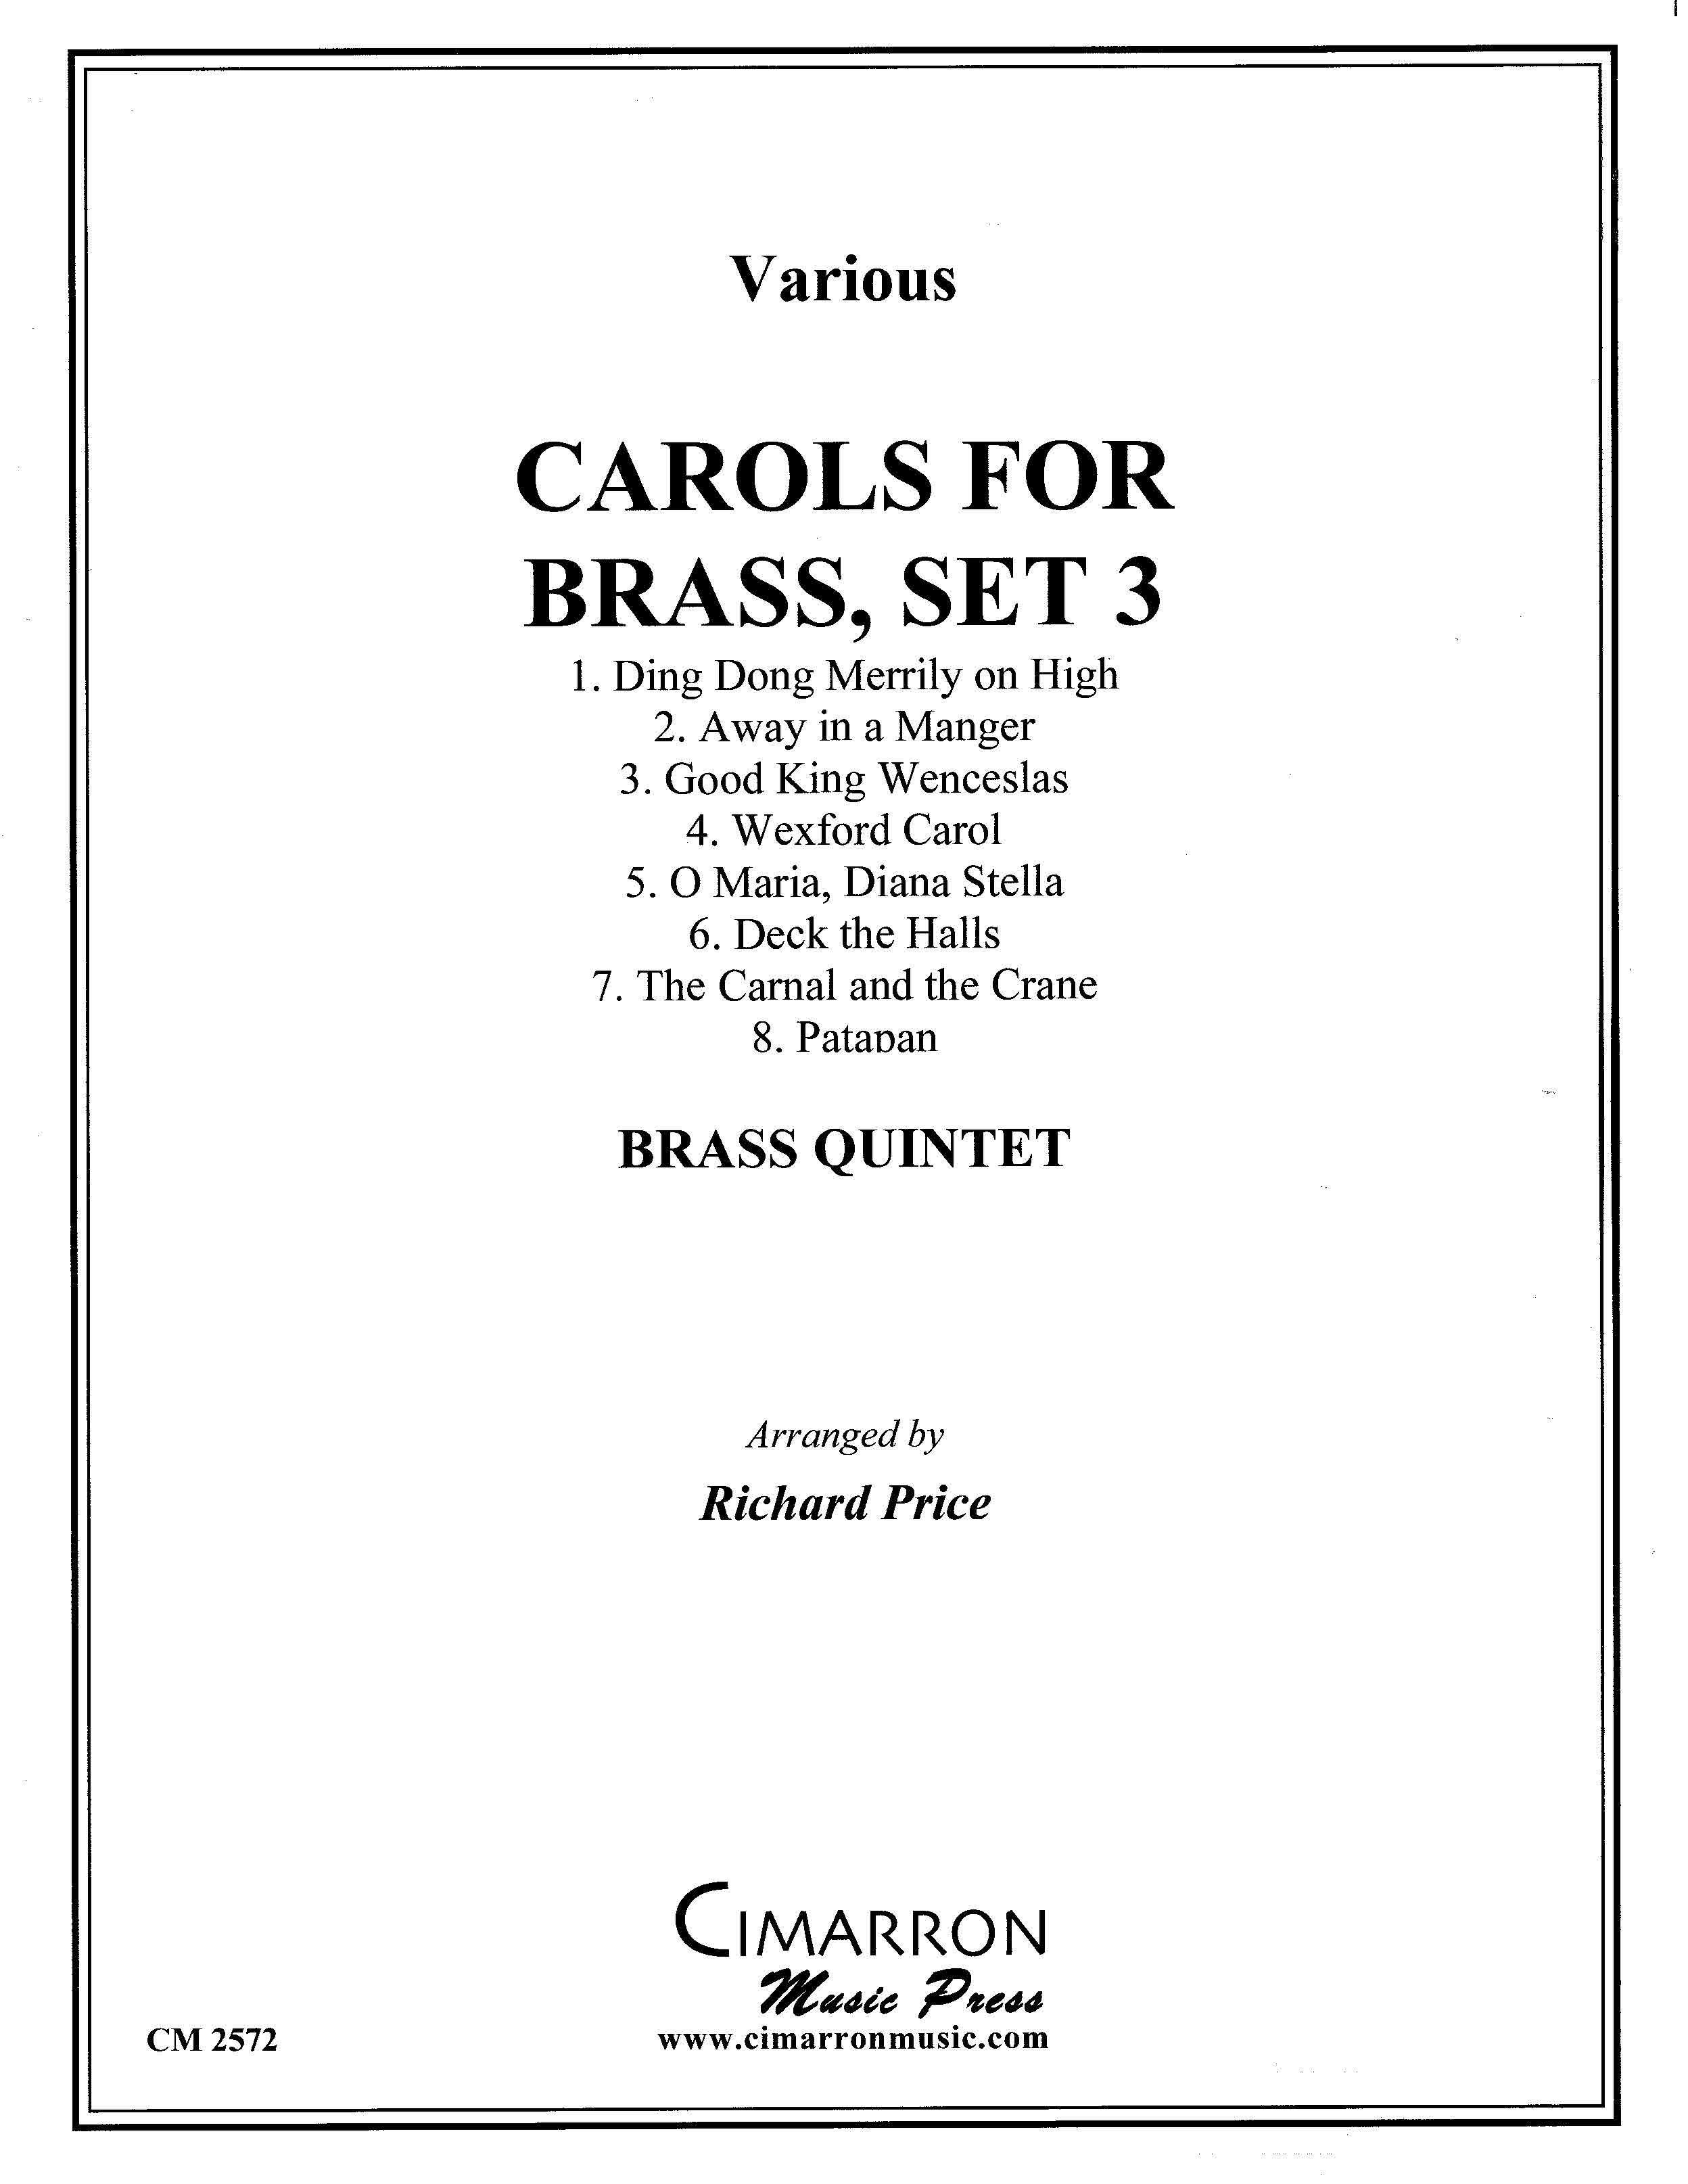 Carols for Brass, Set 3 arranged by Richard Price